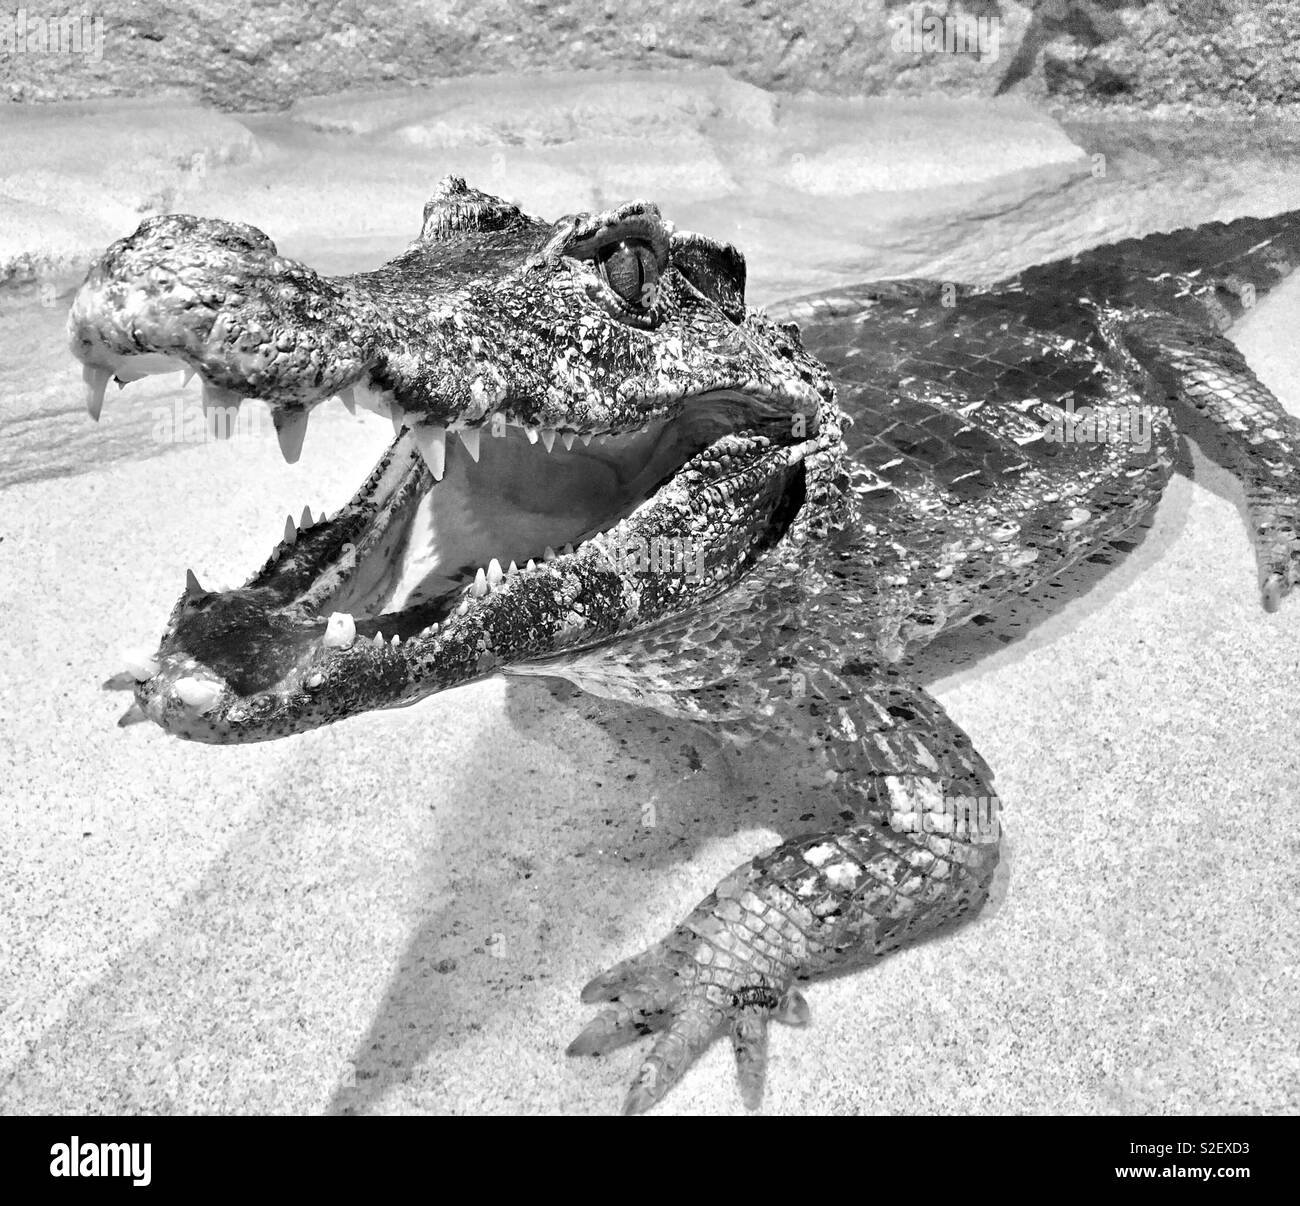 Caiman with open mouth smiling at viewer while lounging in water - Stock Image